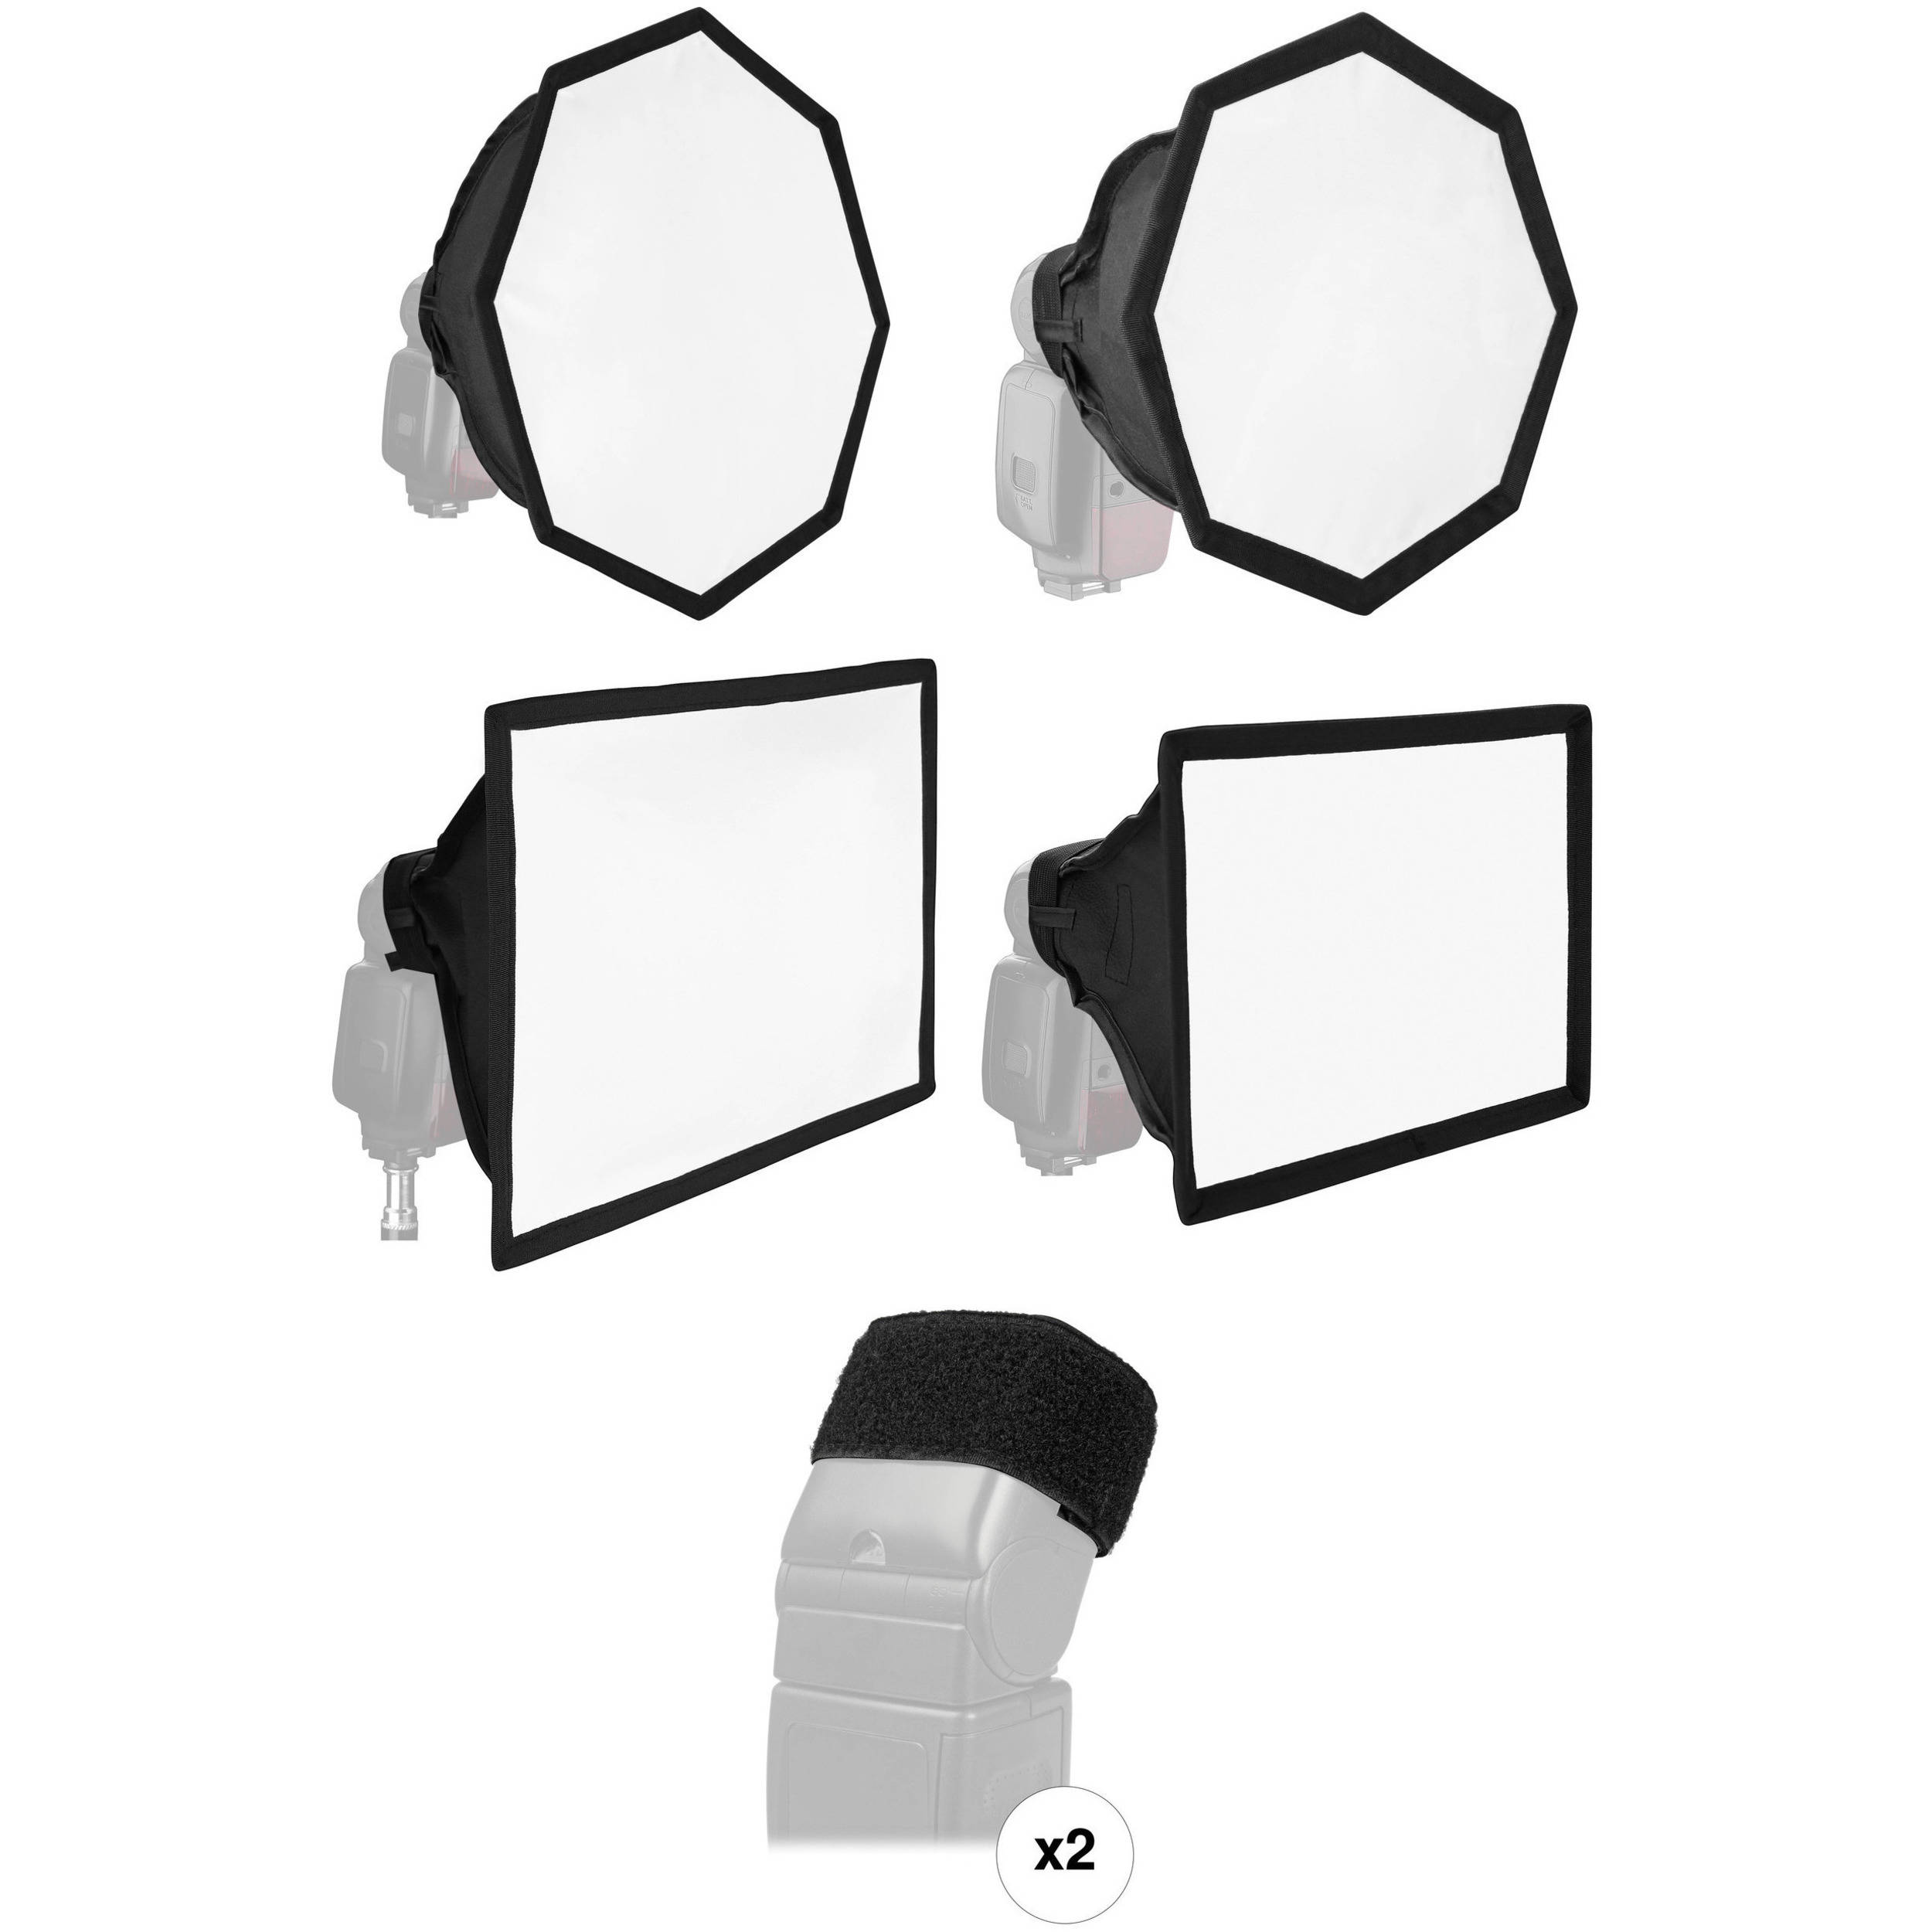 2 Pack Large, 8 x 12 Vello Softbox for Portable Flash